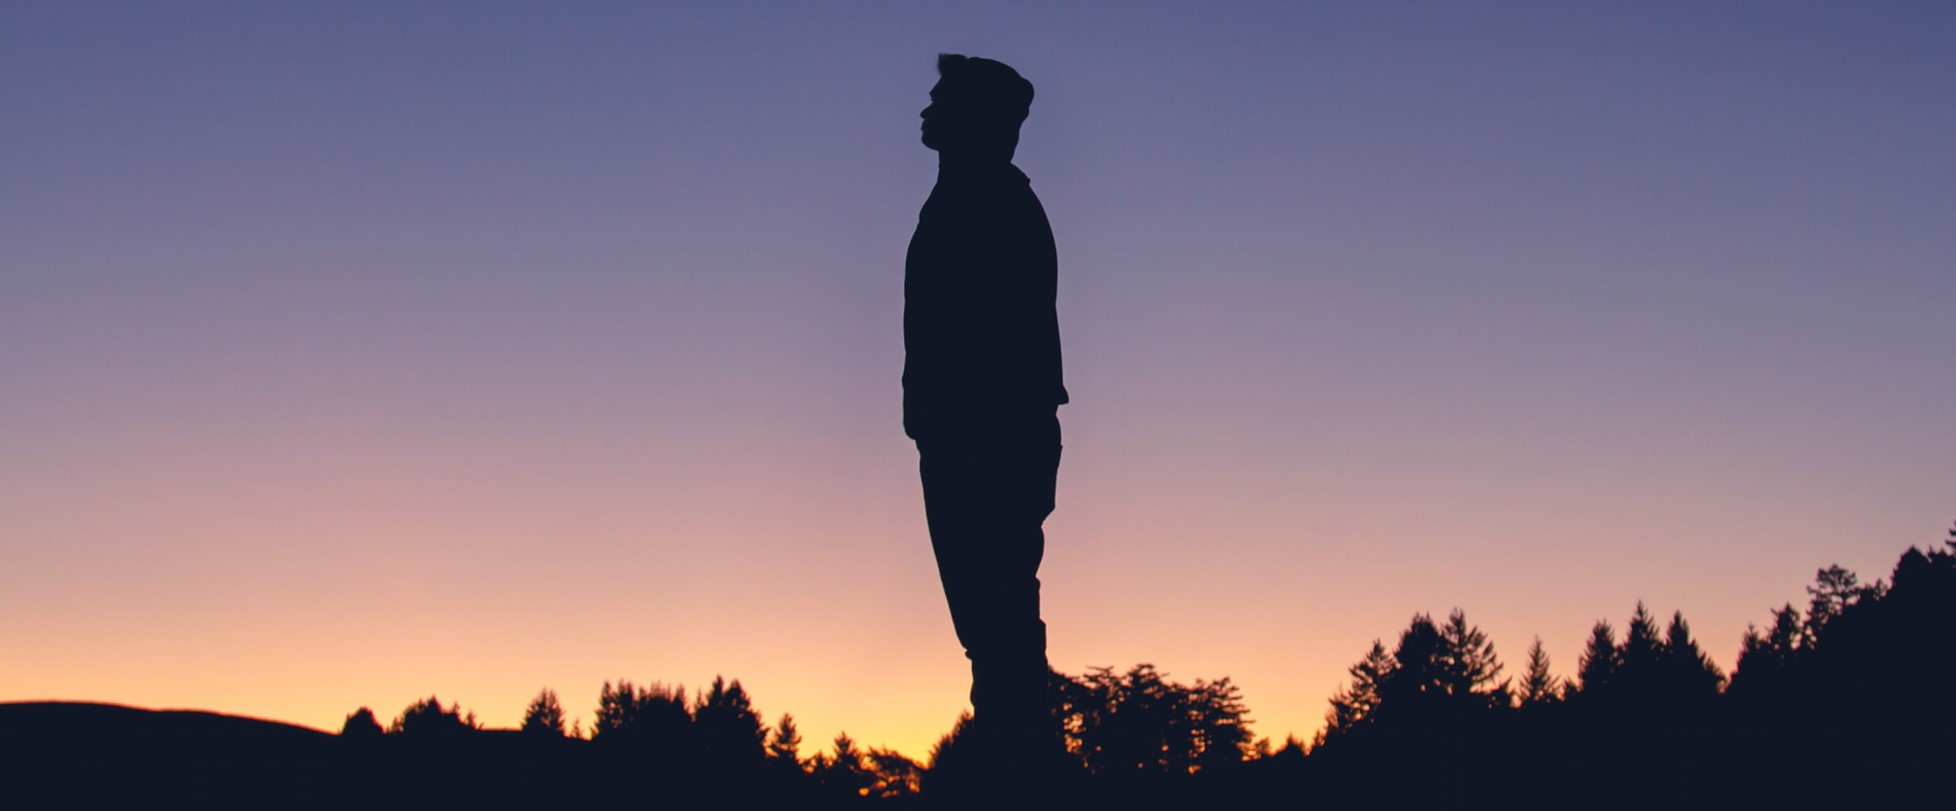 silhouette_nature-sky-sunset-man_cropped